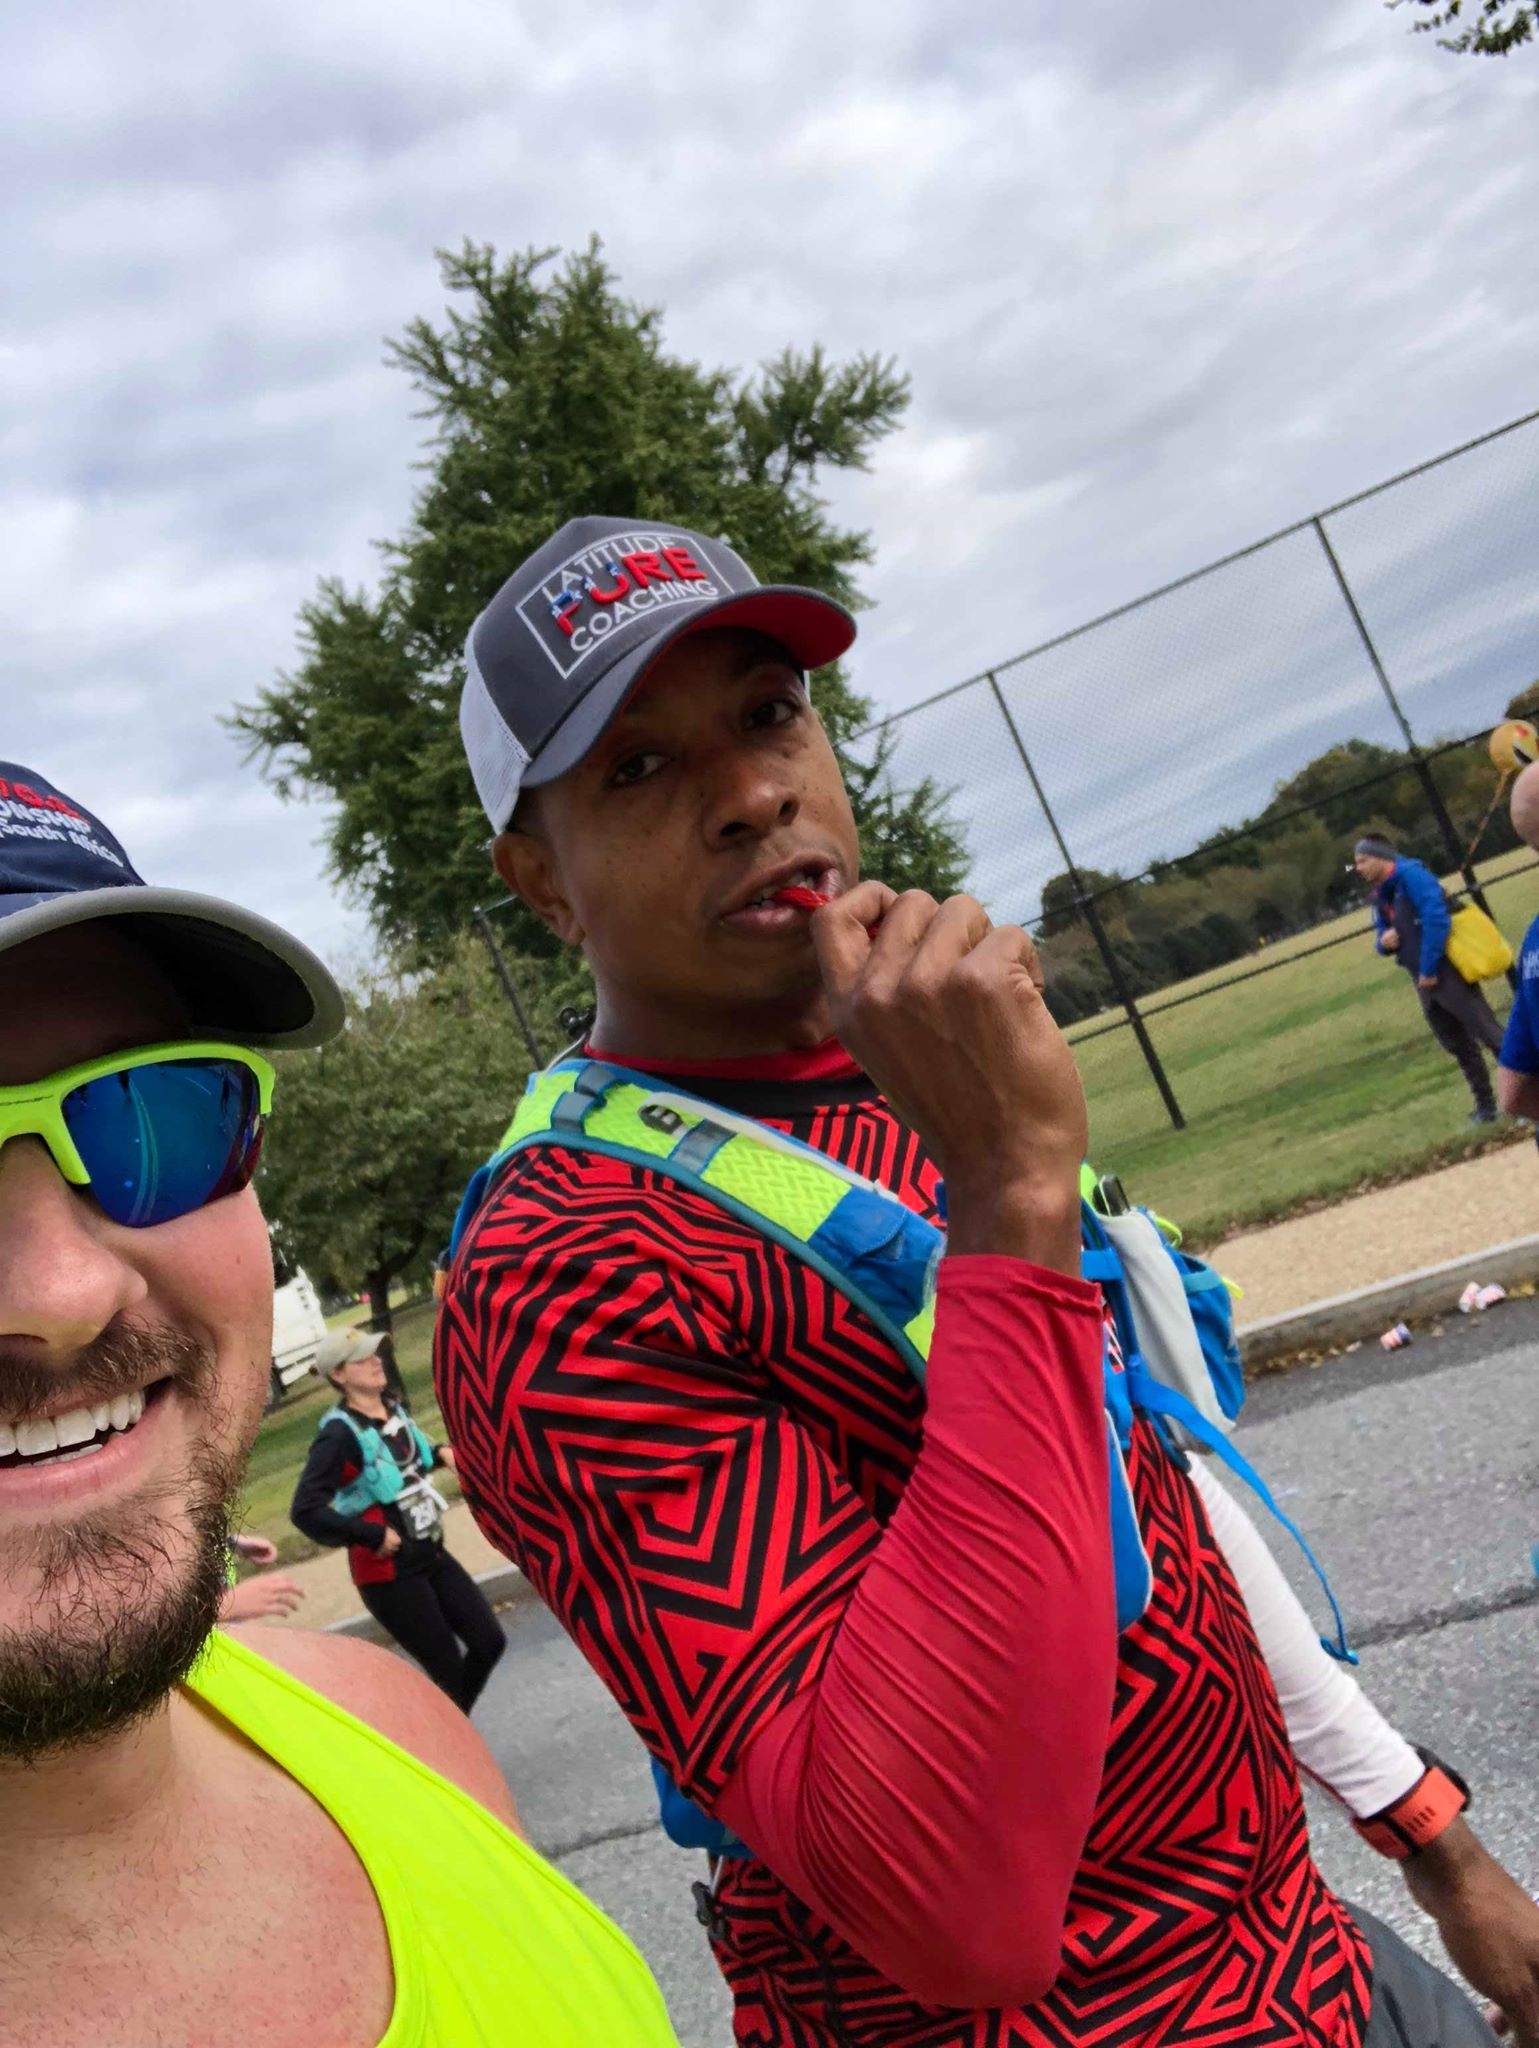 Coach_Terry_Wilson_Pursuit_of_The_Perfect_Race_Marine_Corps_Marathon_2018_13.jpg